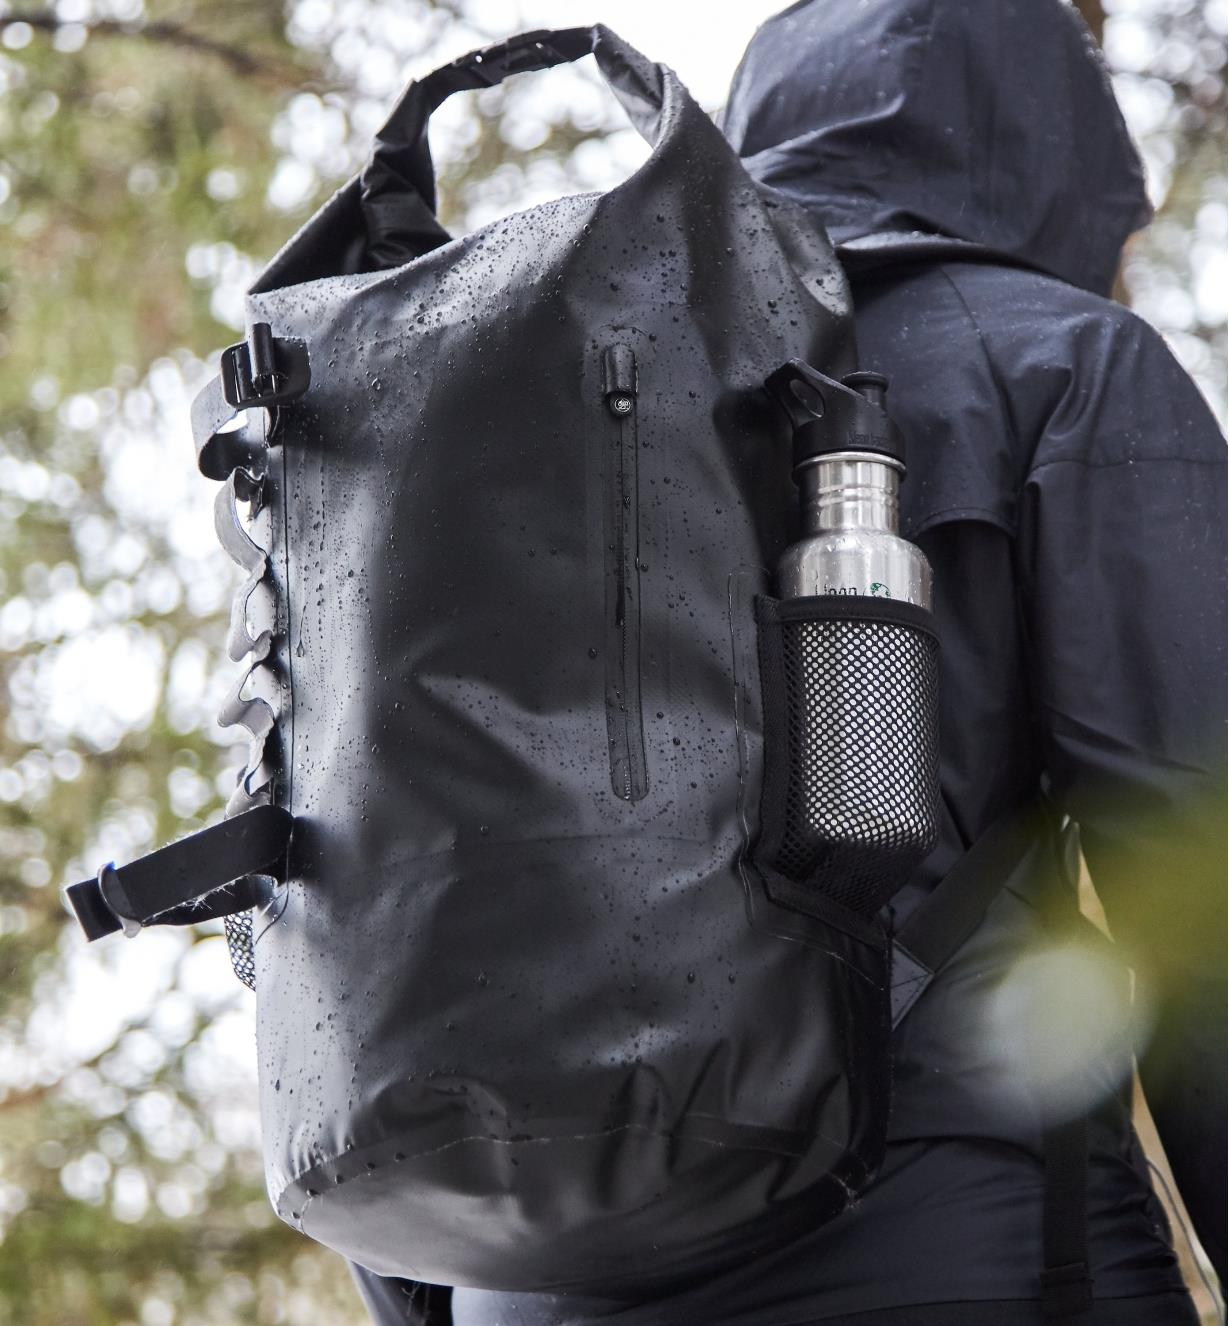 Side view of waterproof dry bag backpack showing a closed zippered pocket and a mesh pocket holding a drink bottle